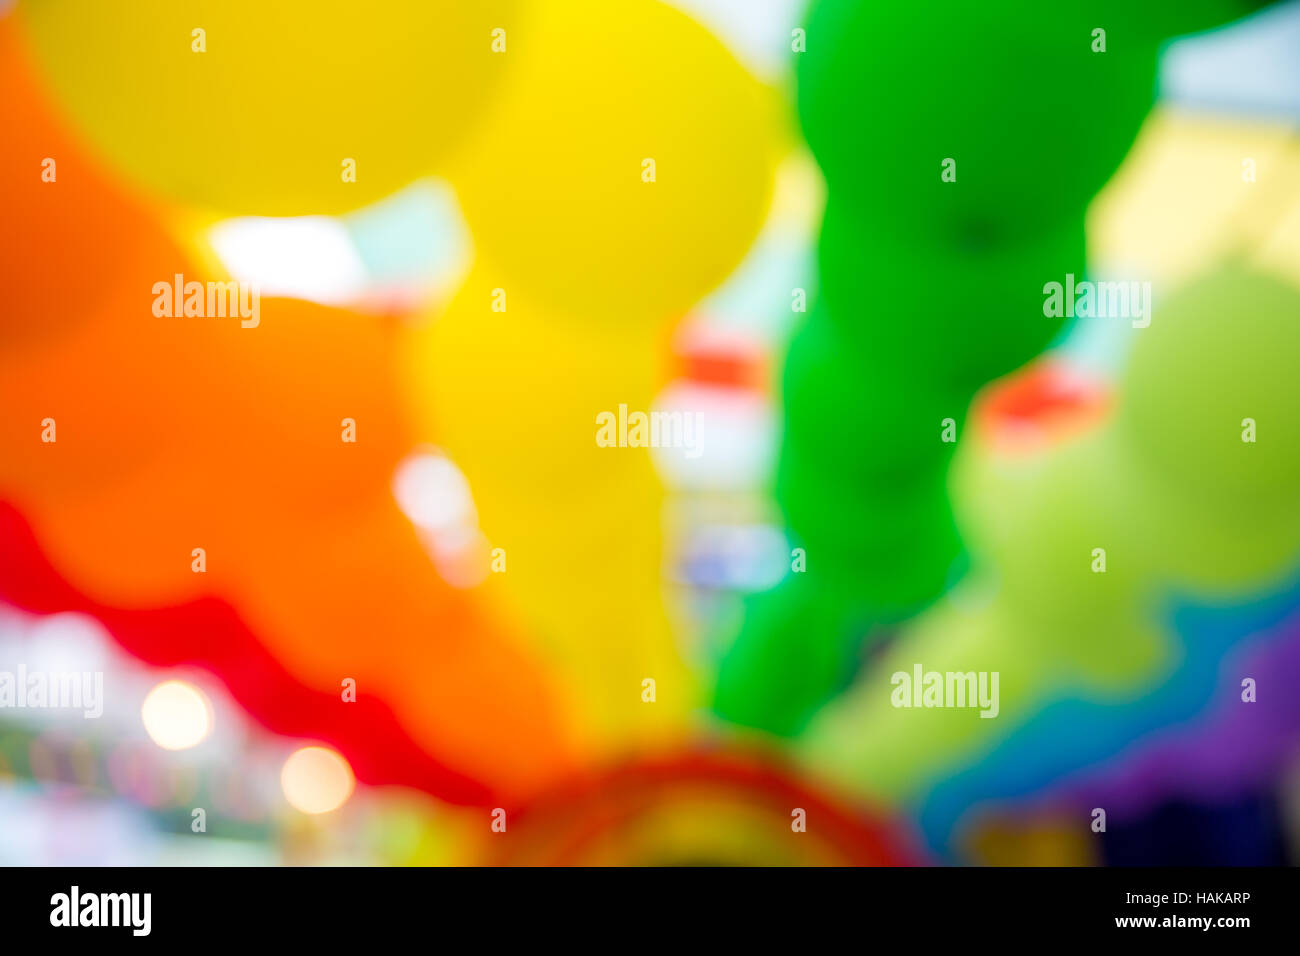 Colorful abstract blurs balloons background - Stock Image